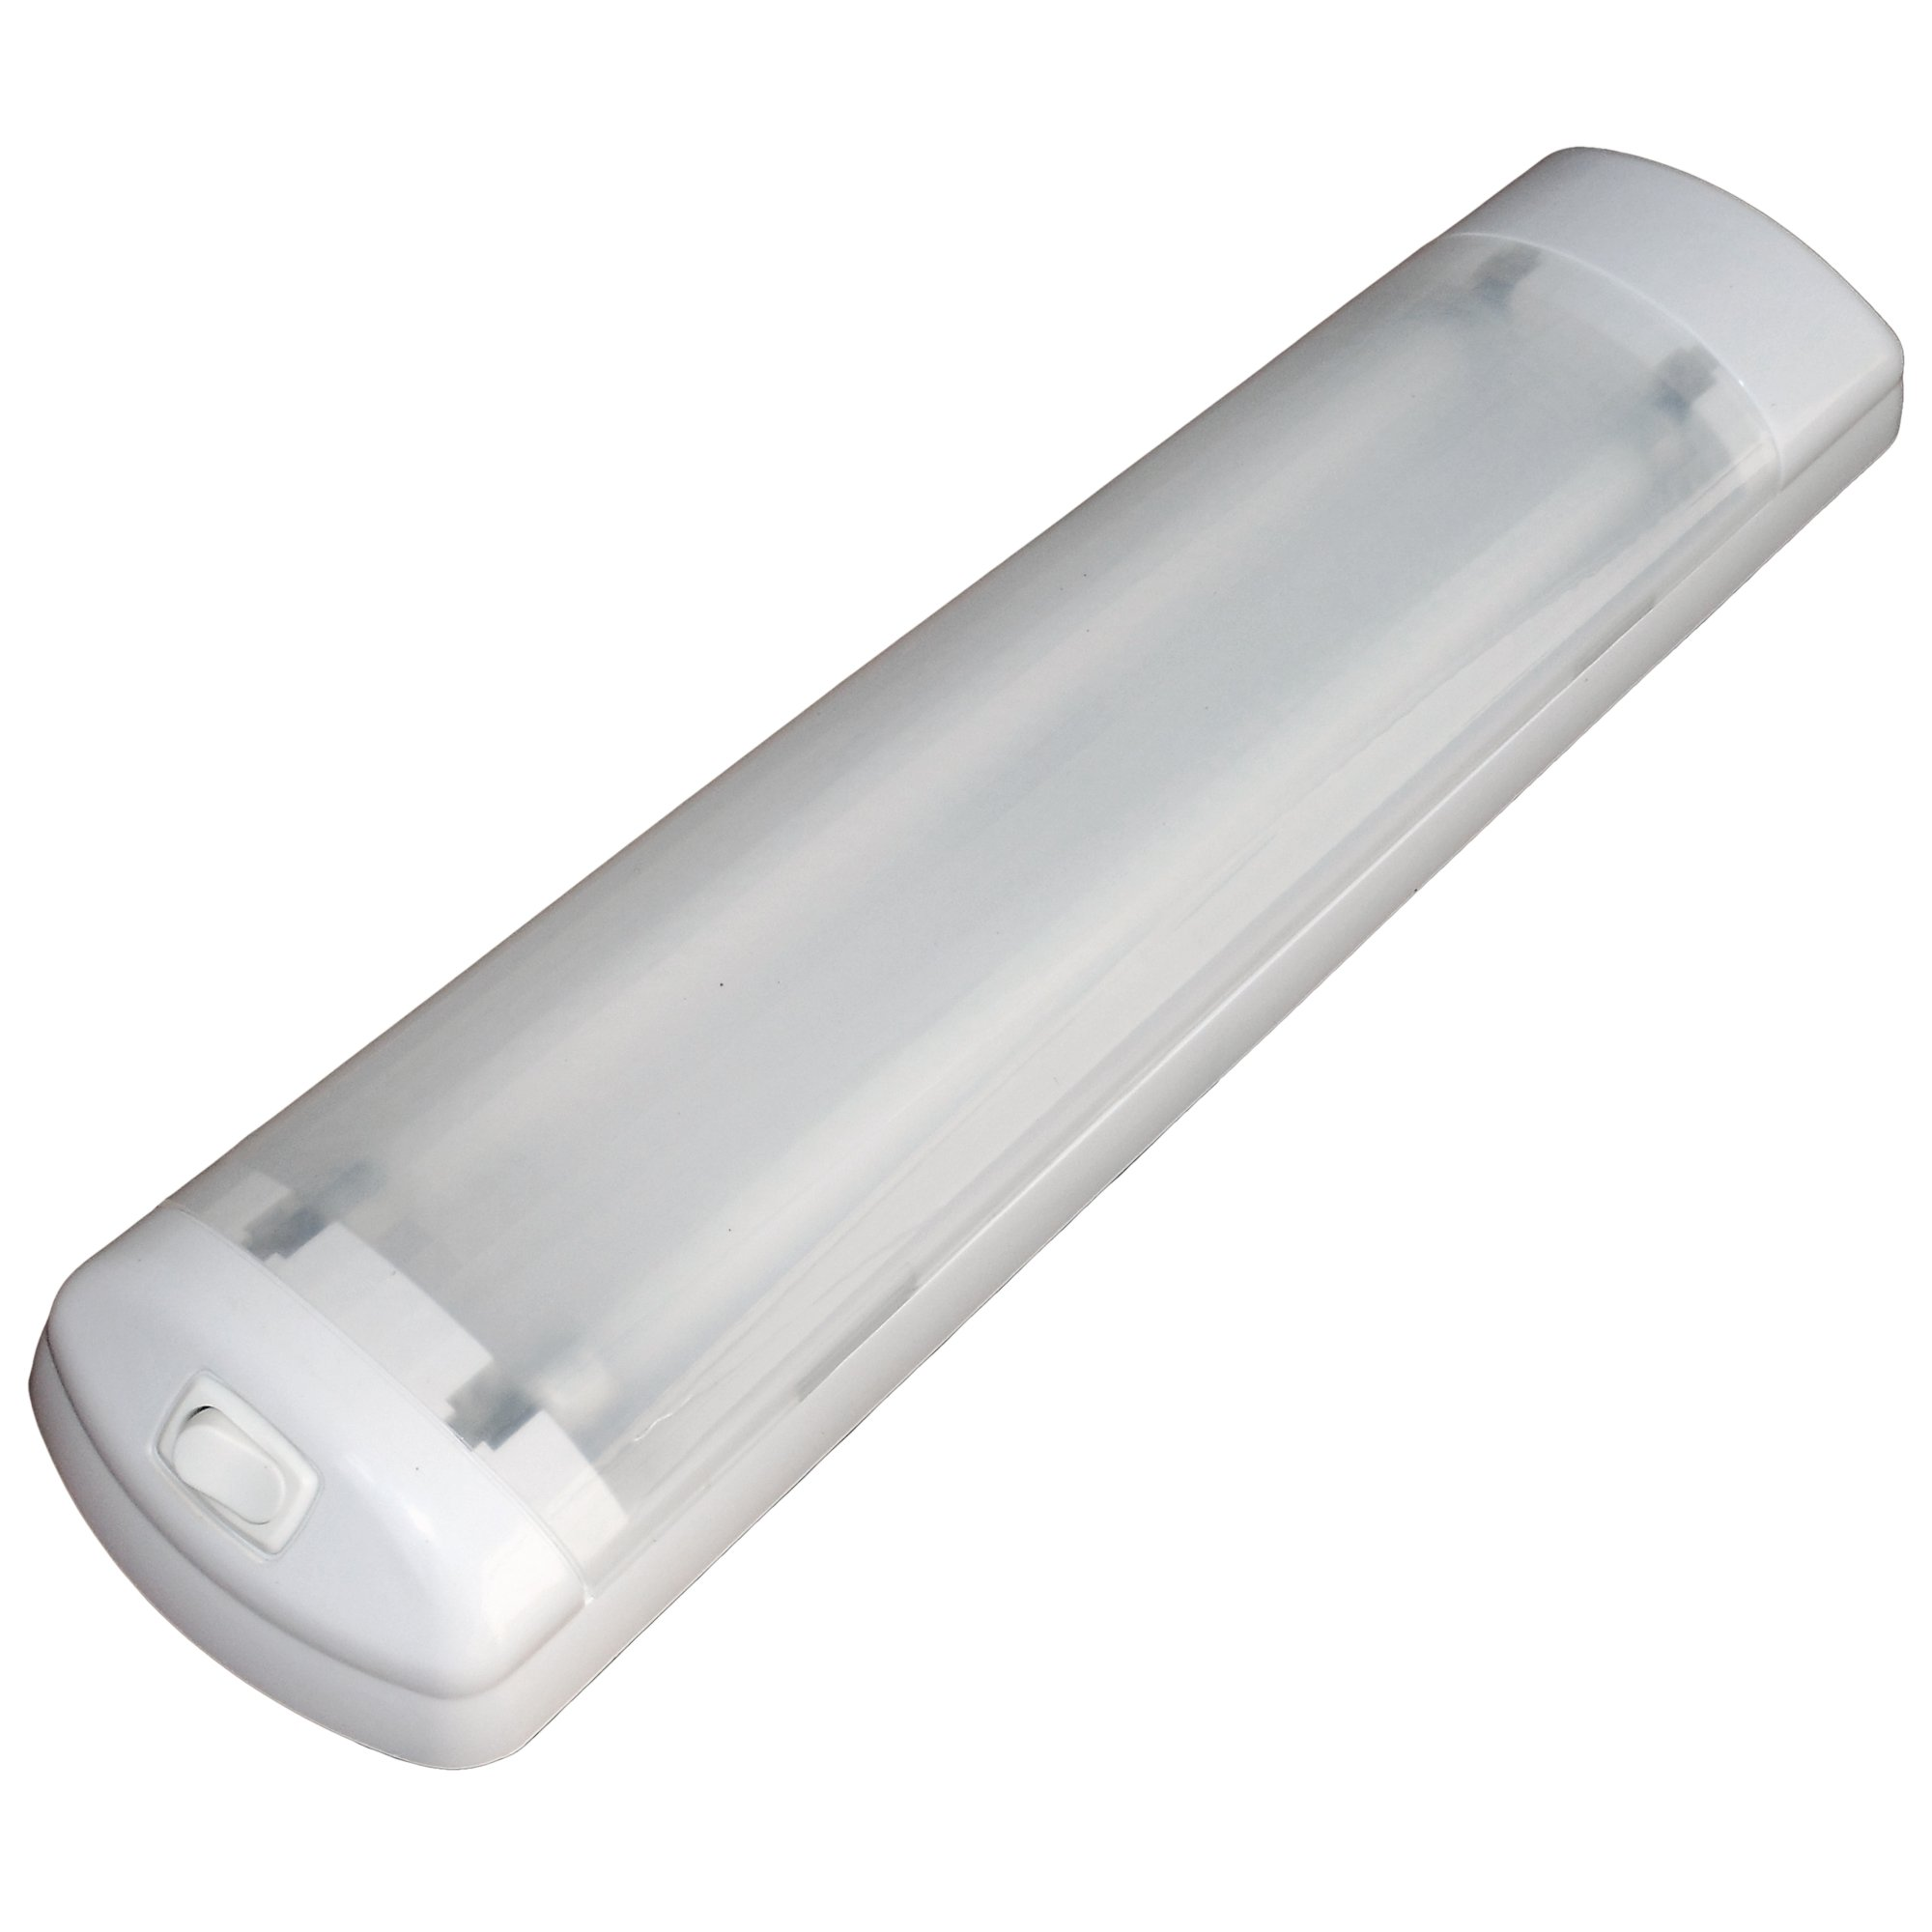 Five Oceans Dual Fluorescent Light Fixture FO-2202